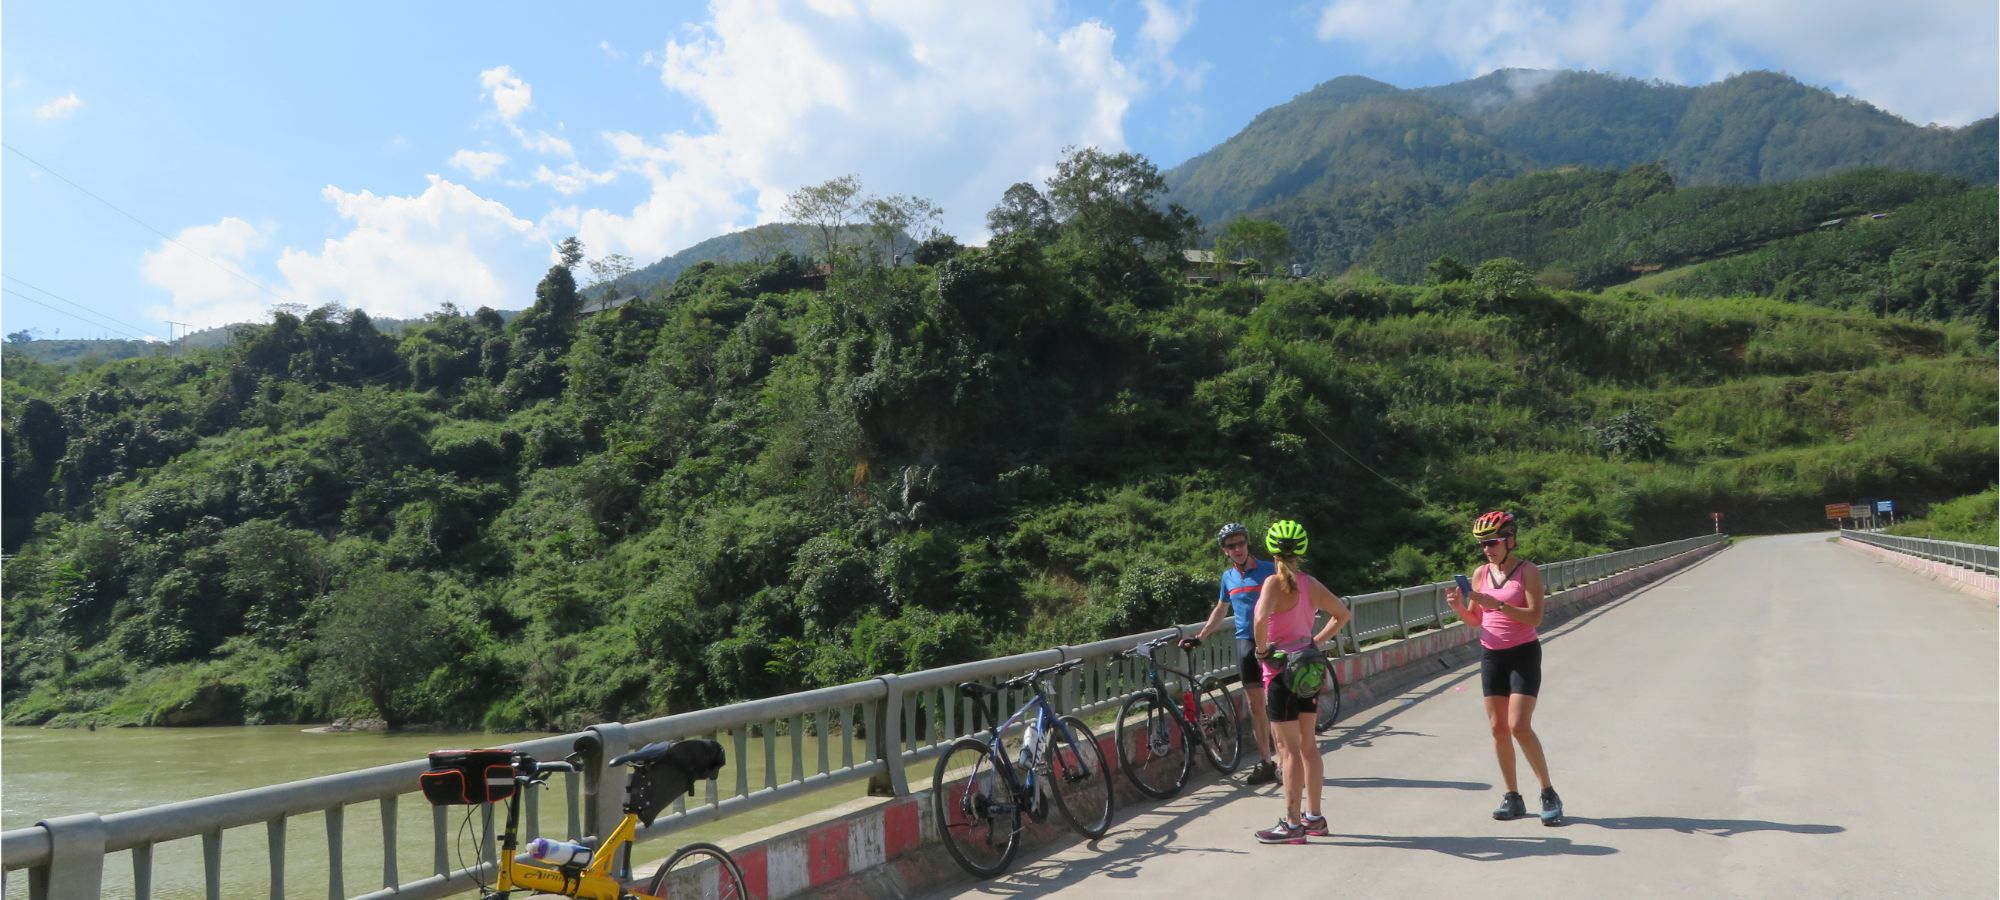 Photos from our 3 Countries 15 Days Cycling Holiday